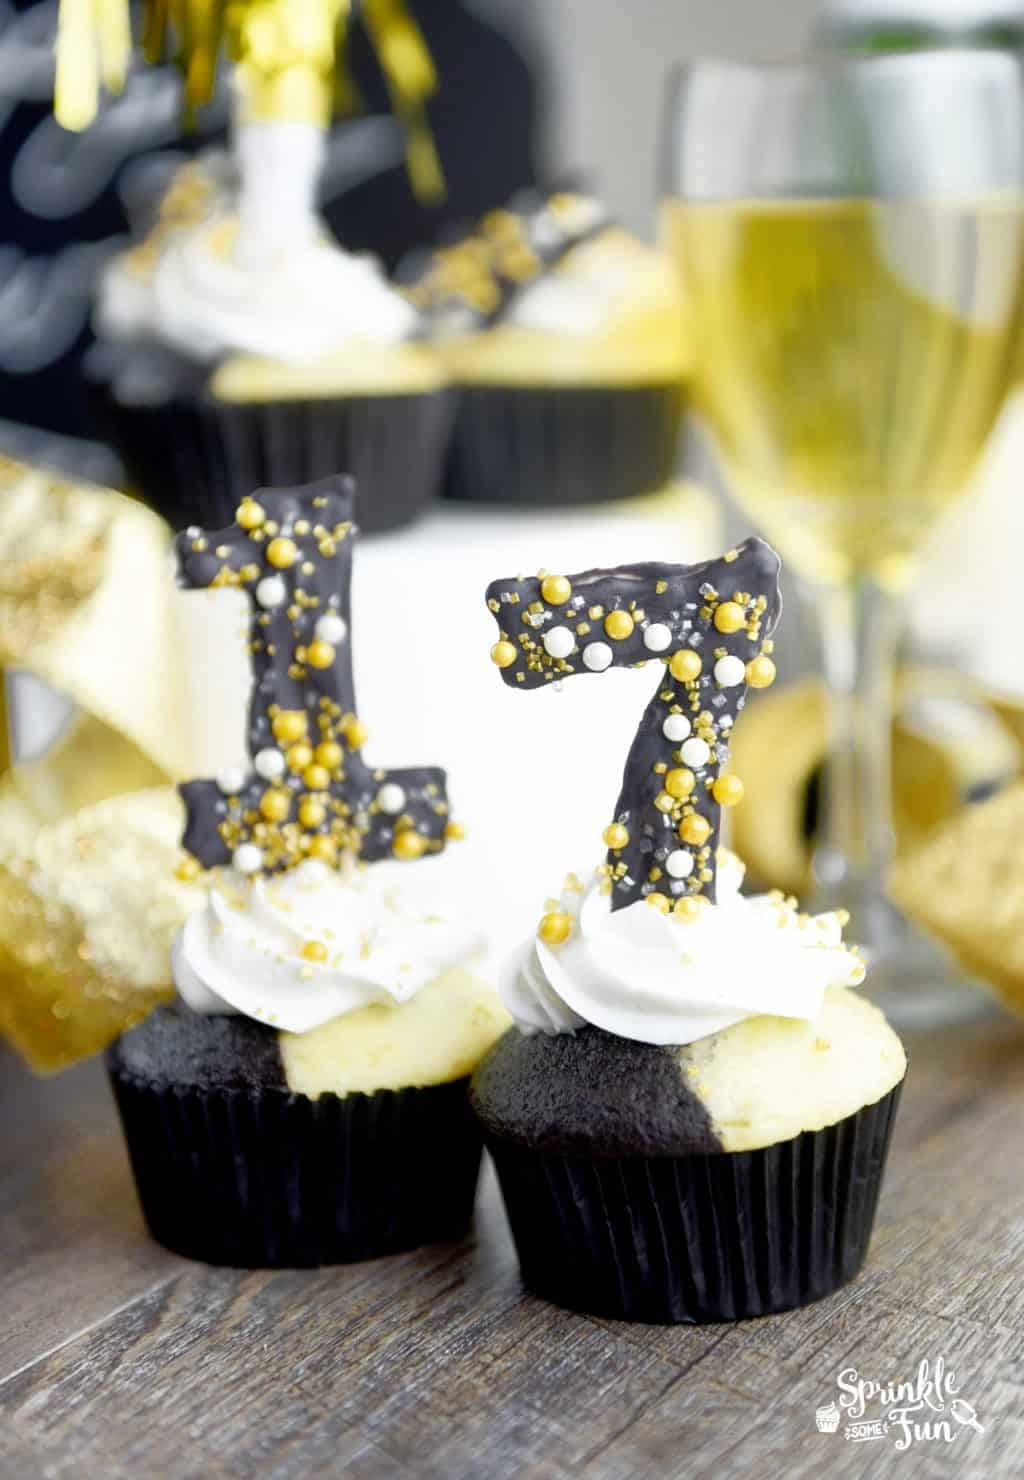 Tuxedo Cupcakes with DIY Candy Numbers for a New Years Eve Party!